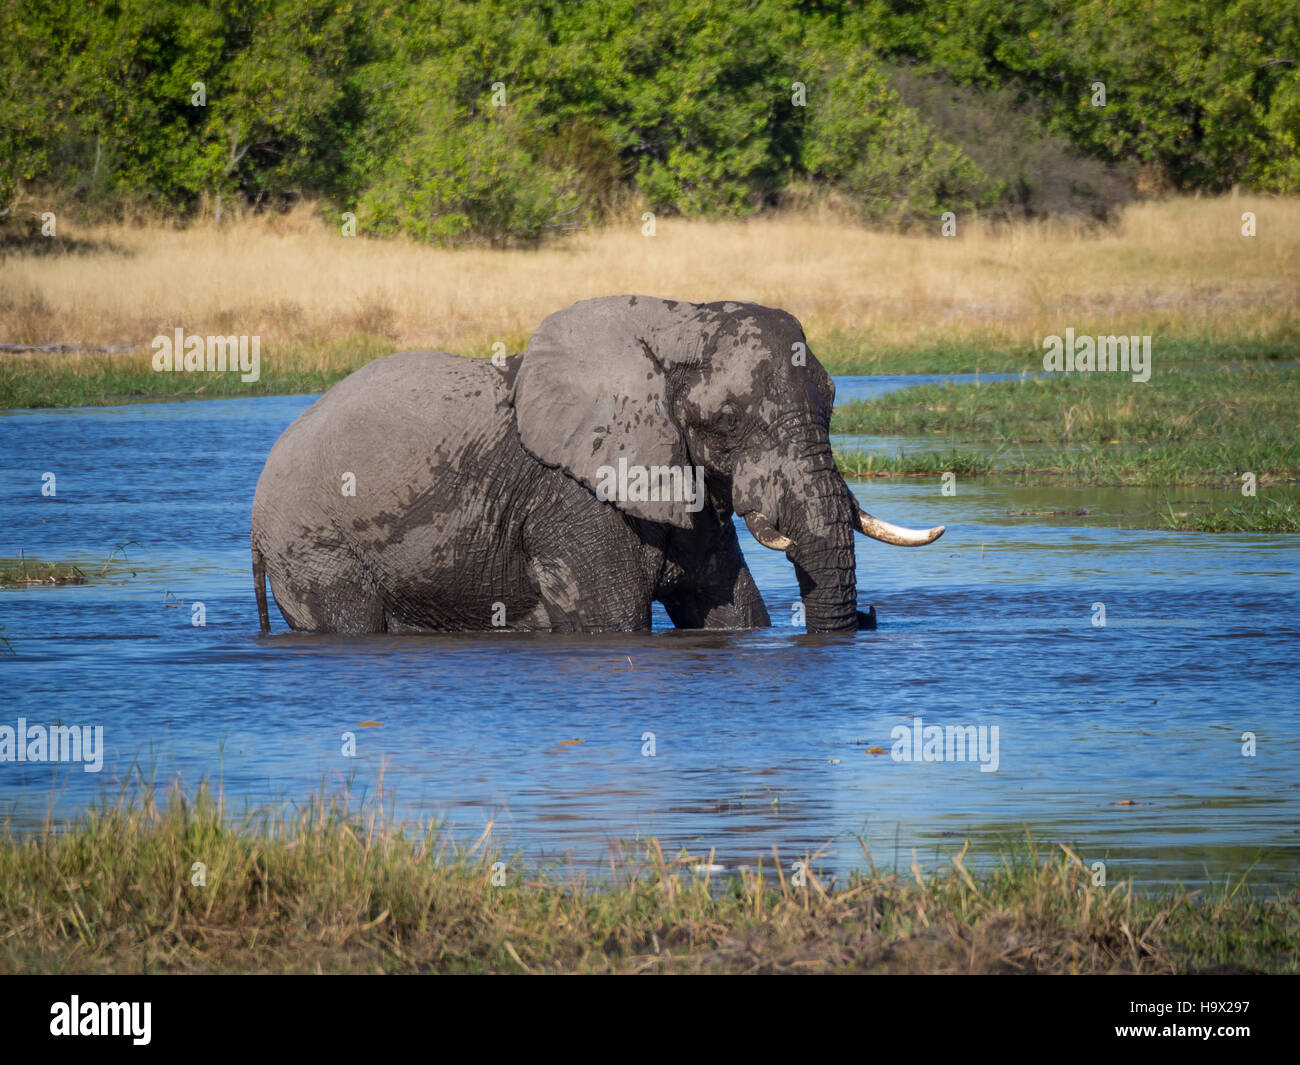 Huge African elephant bull wading through and drinking from river water, safari in Moremi NP, Botswana - Stock Image